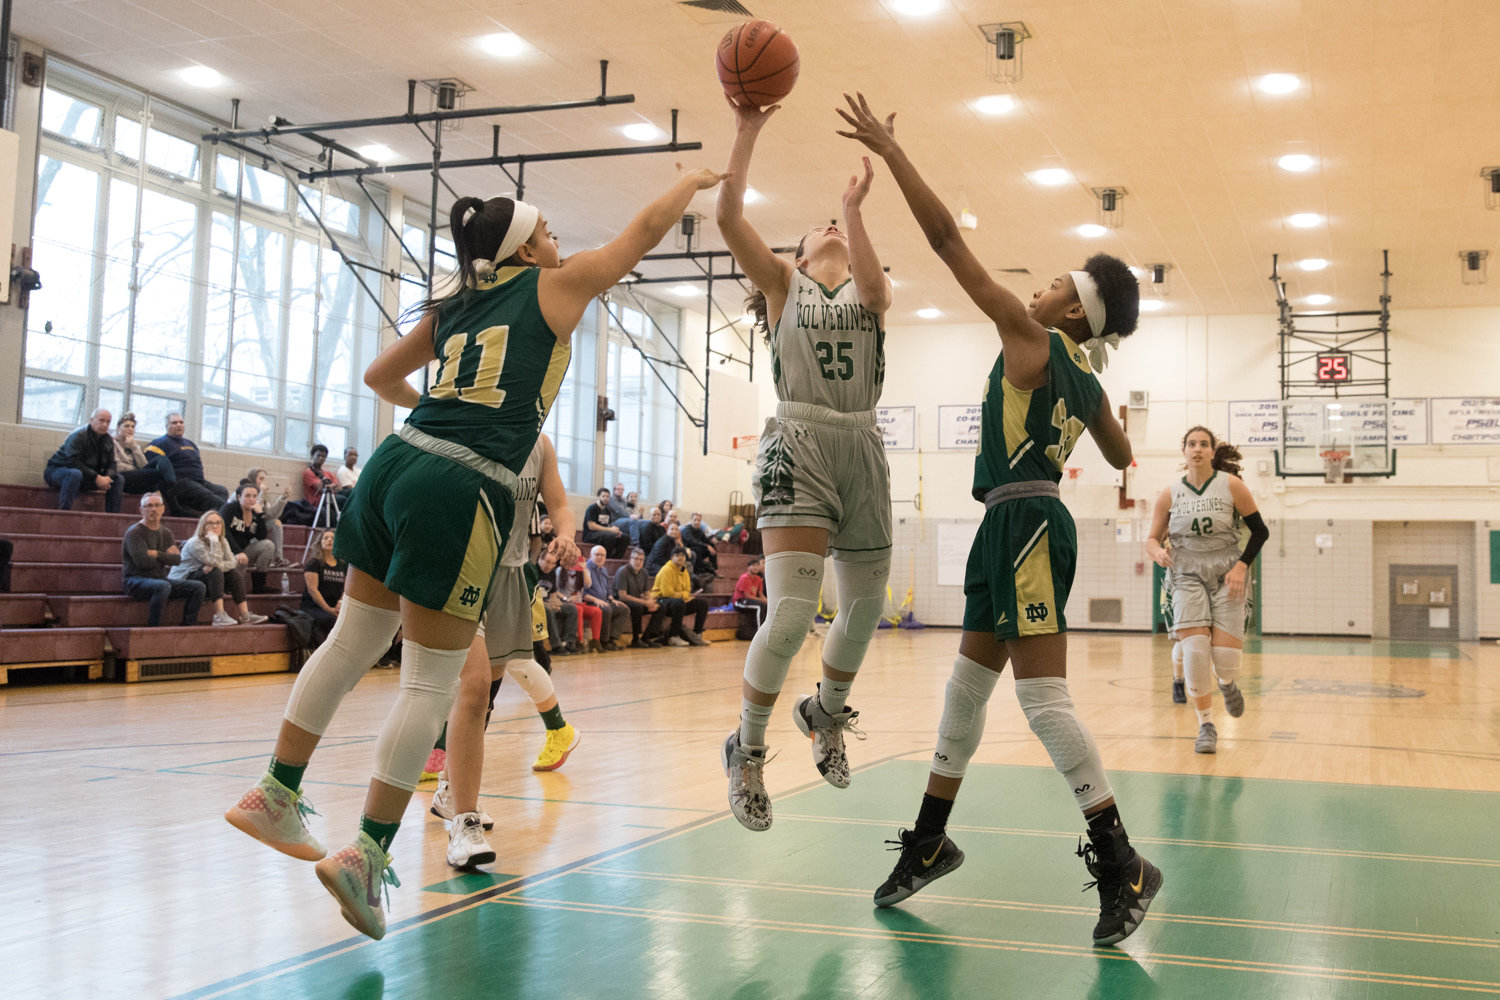 Bronx Science junior guard Carolina Lopez was mired in foul trouble against New Dorp last week, and was held to 12 points in the Wolverines' playoff loss to the Cougars.